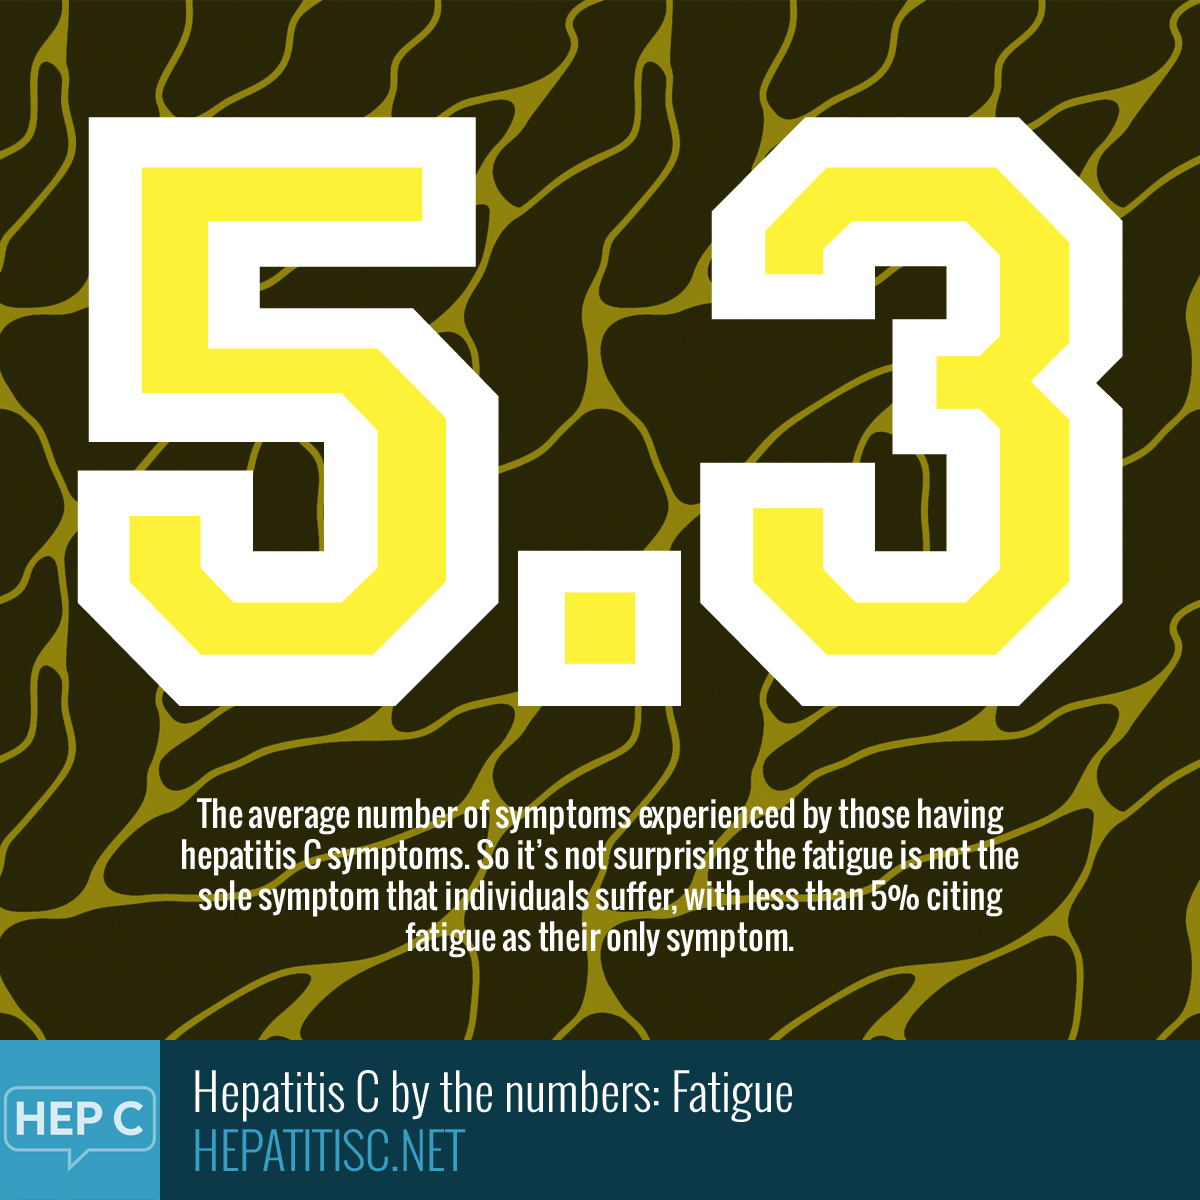 Hepatitis C by the numbers: Fatigue